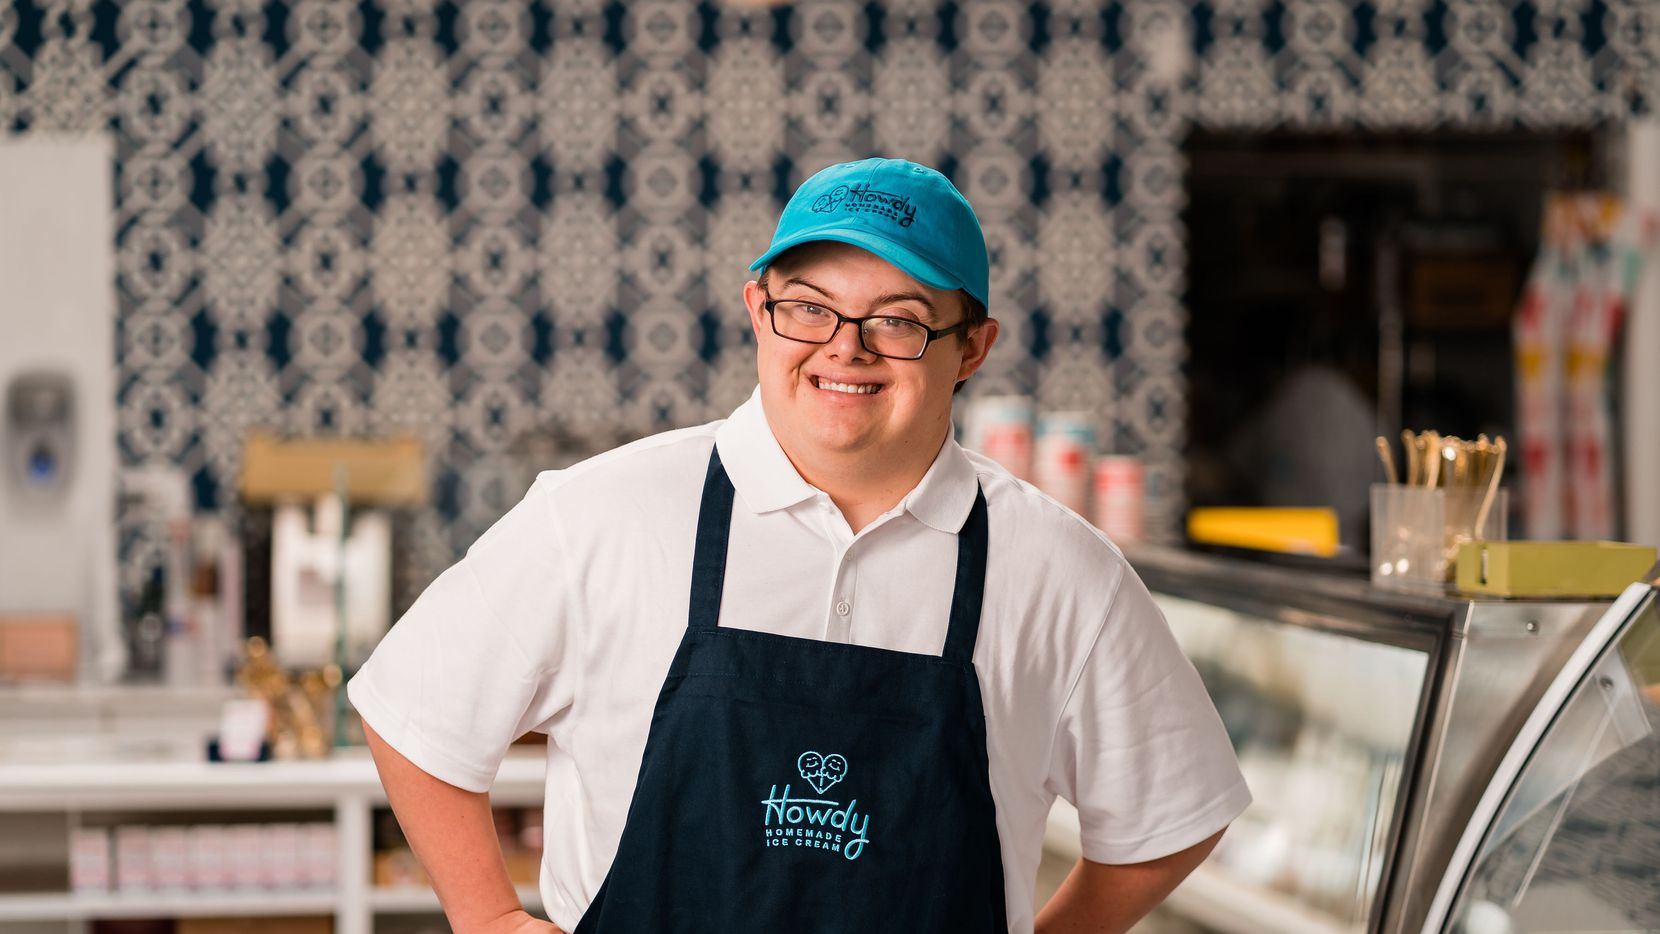 """In an interview with ABC News in 2019, Howdy Homemade Ice Cream's Vice President Coleman Jones said """"Waking up to ice cream is, really, a blessing."""""""